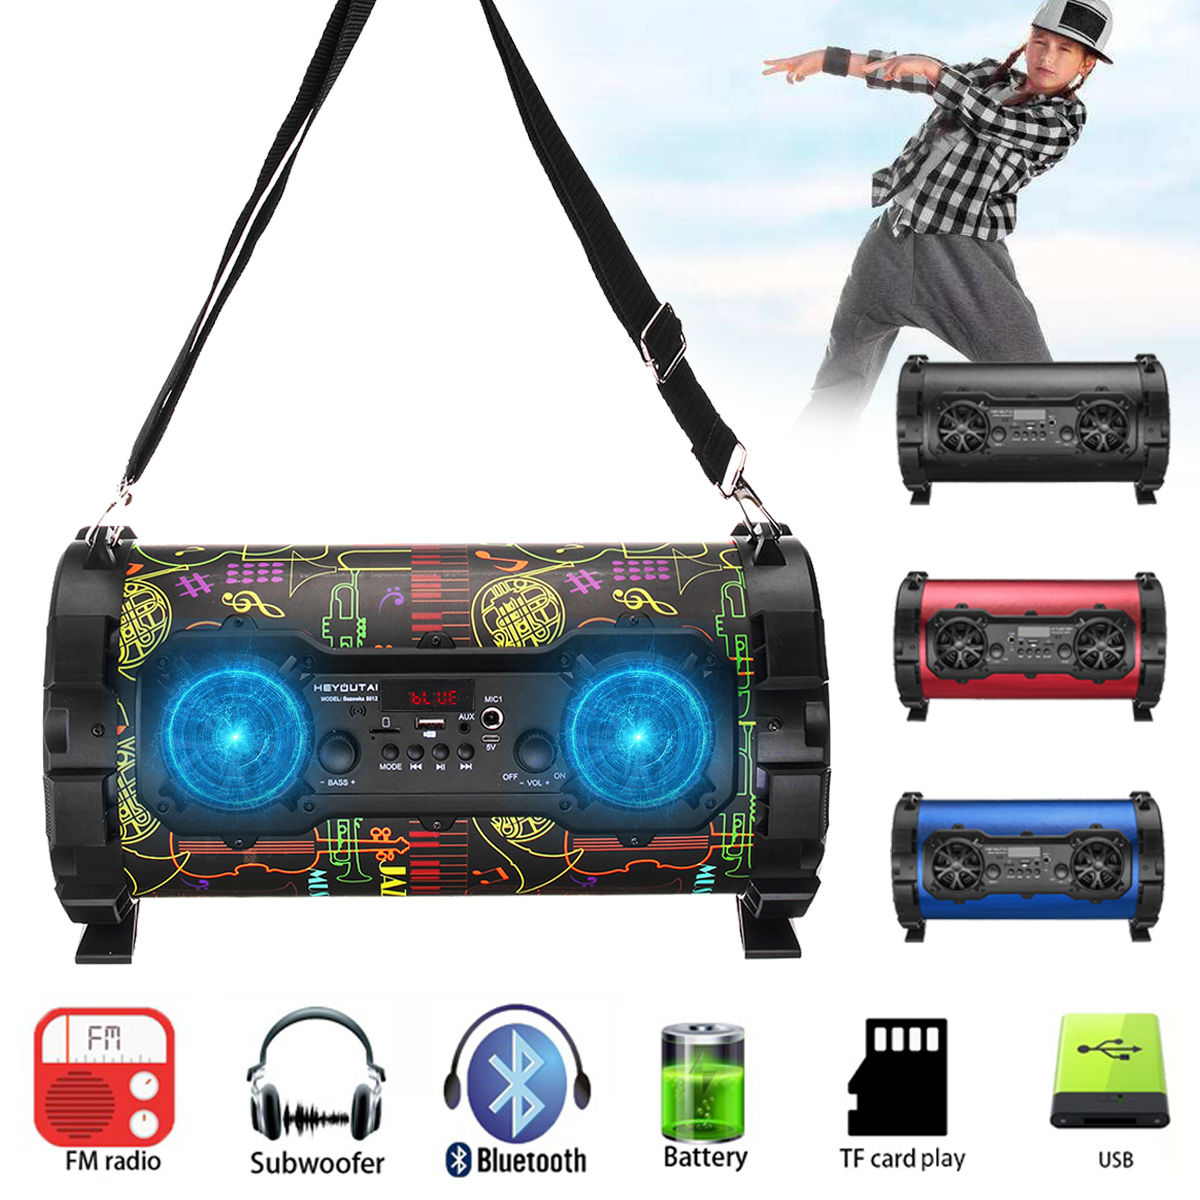 25W Wireless Bluetooth Speaker Stereo Bass Portable Loudspeaker Sound System AUX/USB/TF Card/FM Radio Outdoor Speaker Subwoofer 25w wireless bluetooth speaker stereo bass portable loudspeaker sound system aux usb tf card fm radio outdoor speaker subwoofer